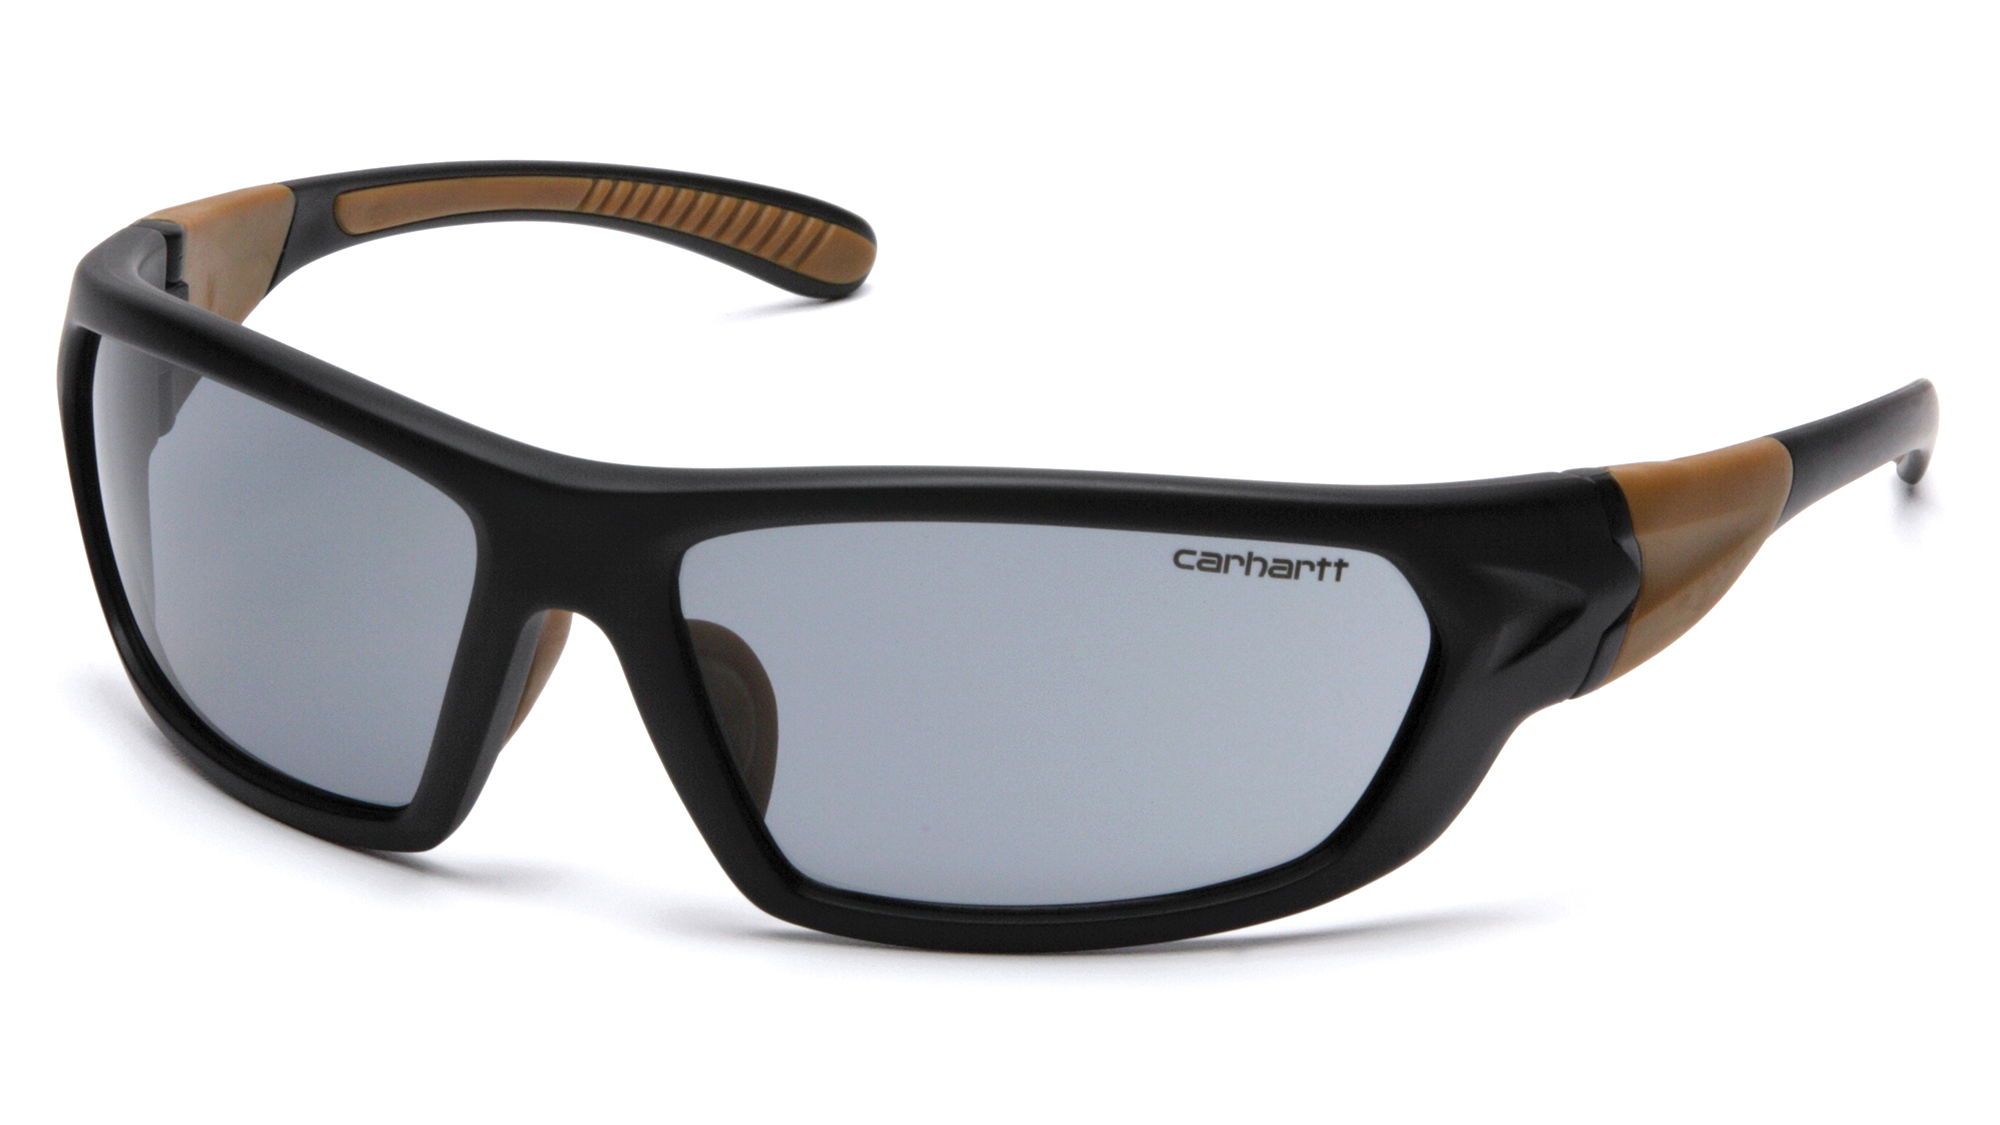 Carhartt Carbondale Gray Anti-Fog Lens Safety Glasses-Safety Glasses